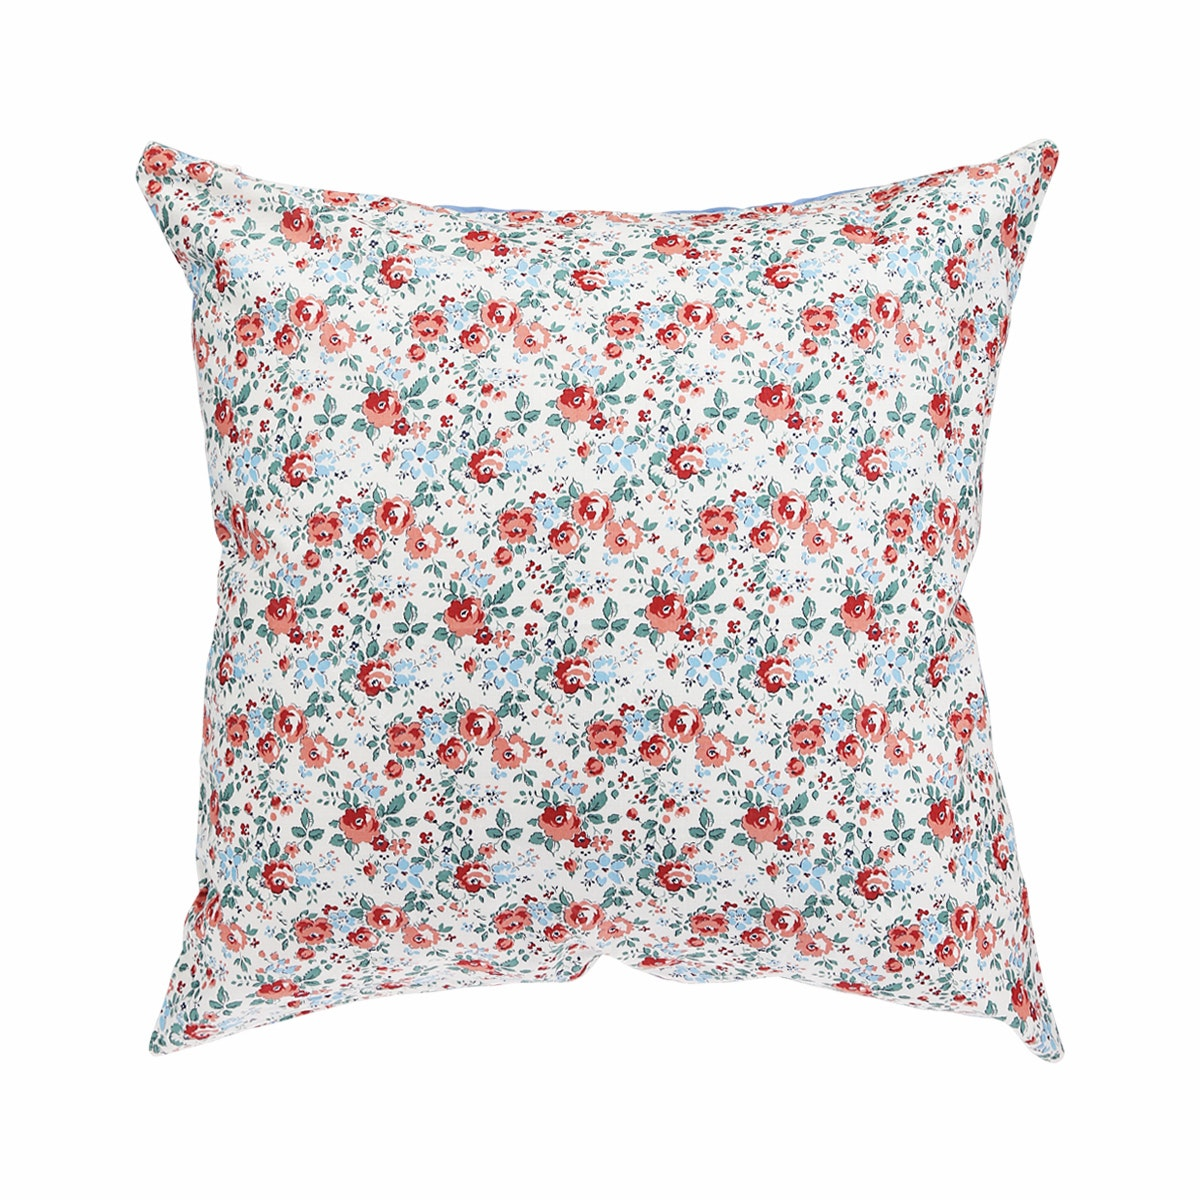 Caninea Home & Living Cushion Cover Blue Floral 40X40CM